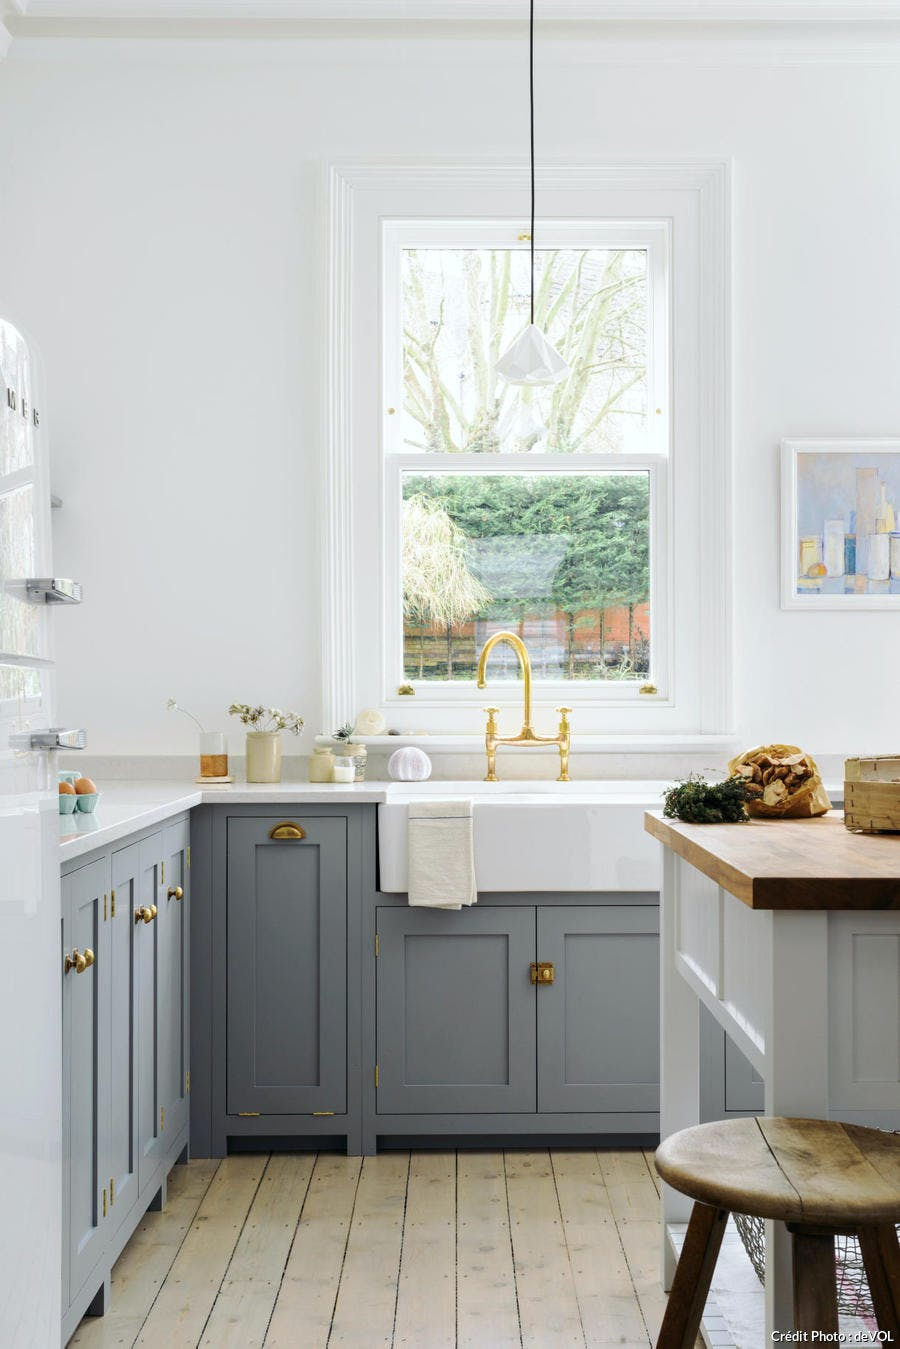 Cuisine Campagne Chic 8 Idees Deco A Imiter 2020 Maison